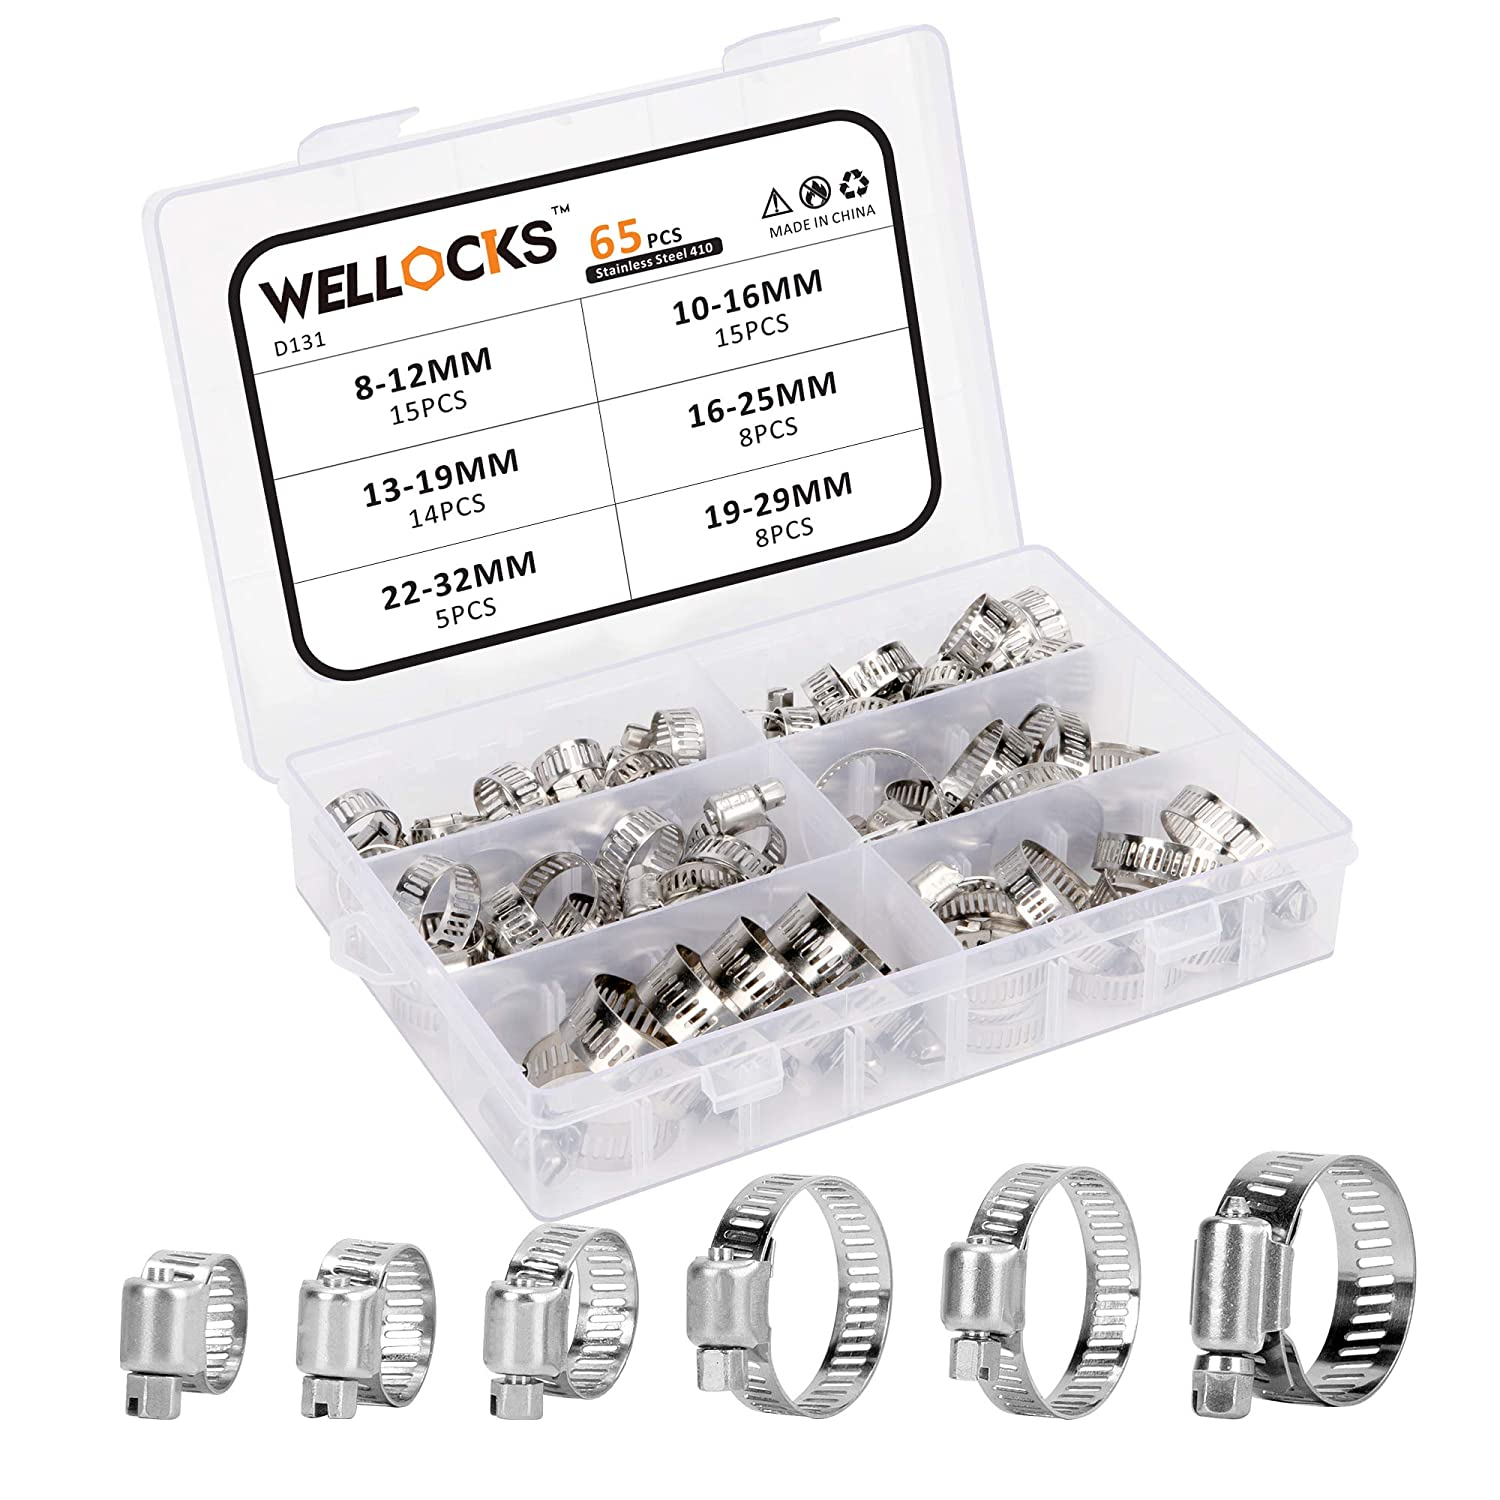 Plumbing D131 Automotive and Mechanical Application WELLOCKS Hose Clamp Assortment 65PCS Stainless Steel Adjustable 8-32mm Range Worm Gear Hose Clamps Kit Fuel Line Clamp for Water Pipe